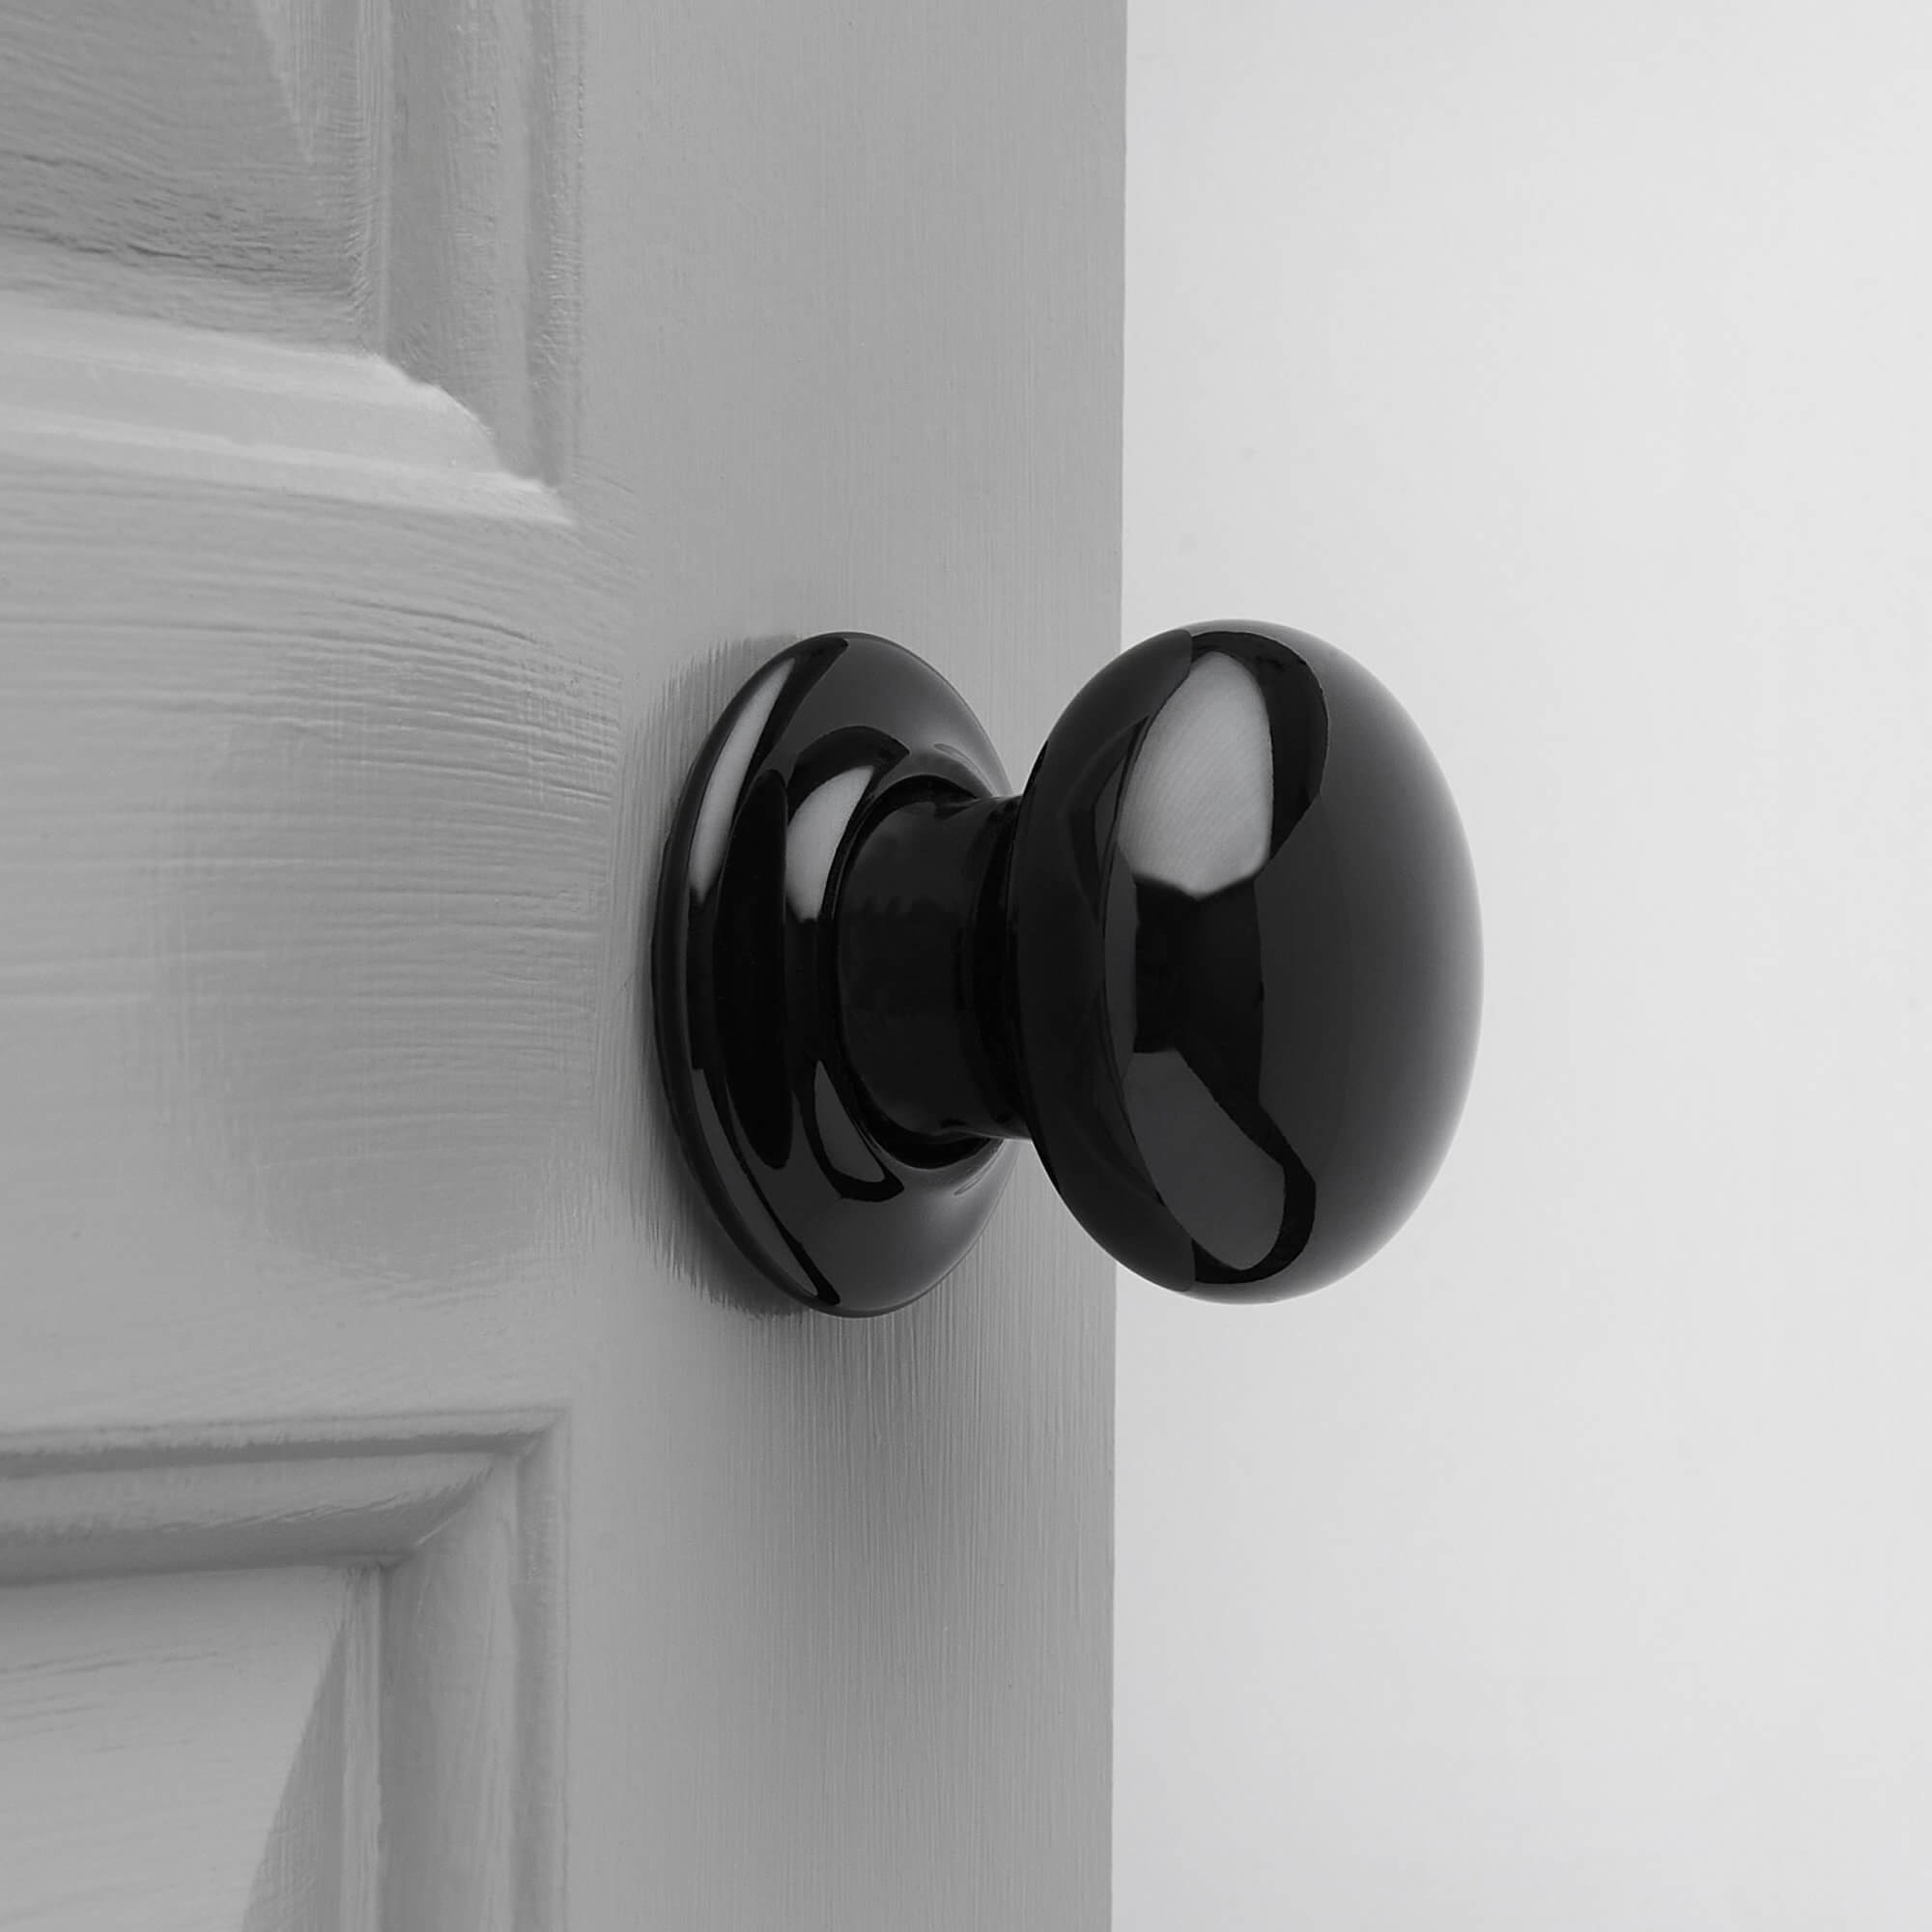 Porcelain Door Knobs (Pair) - Black